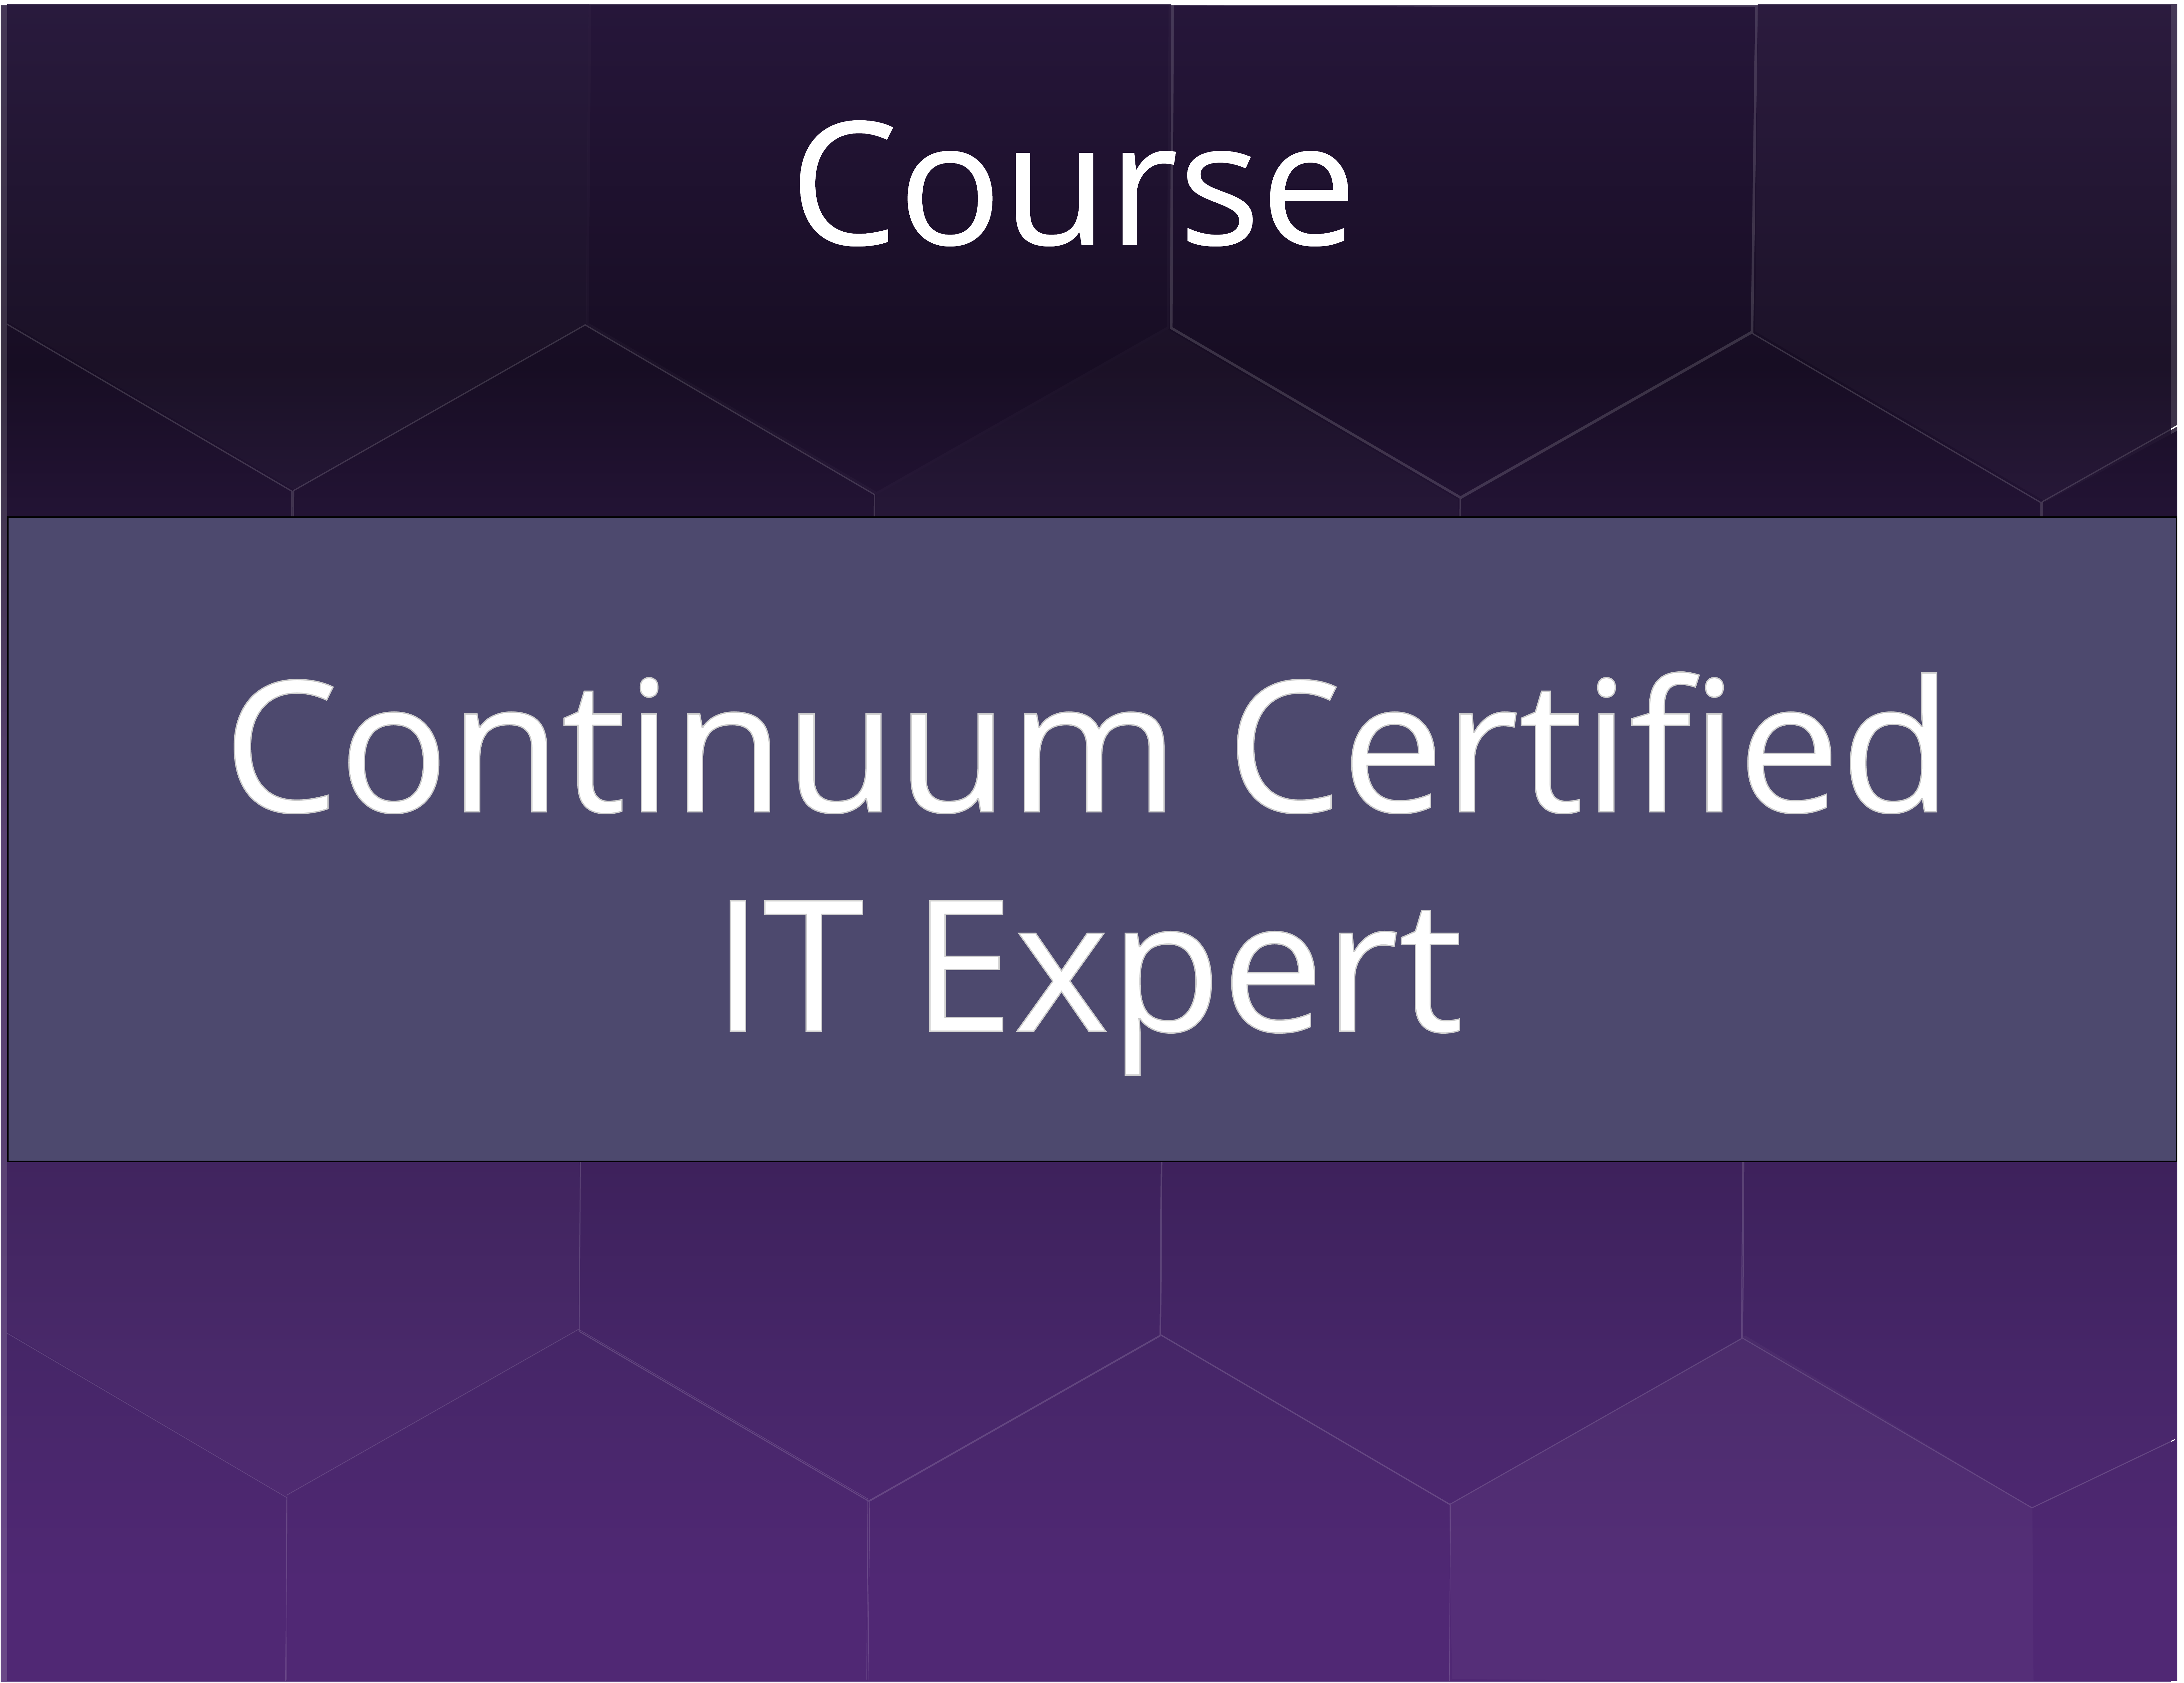 Continuum Certified IT Expert